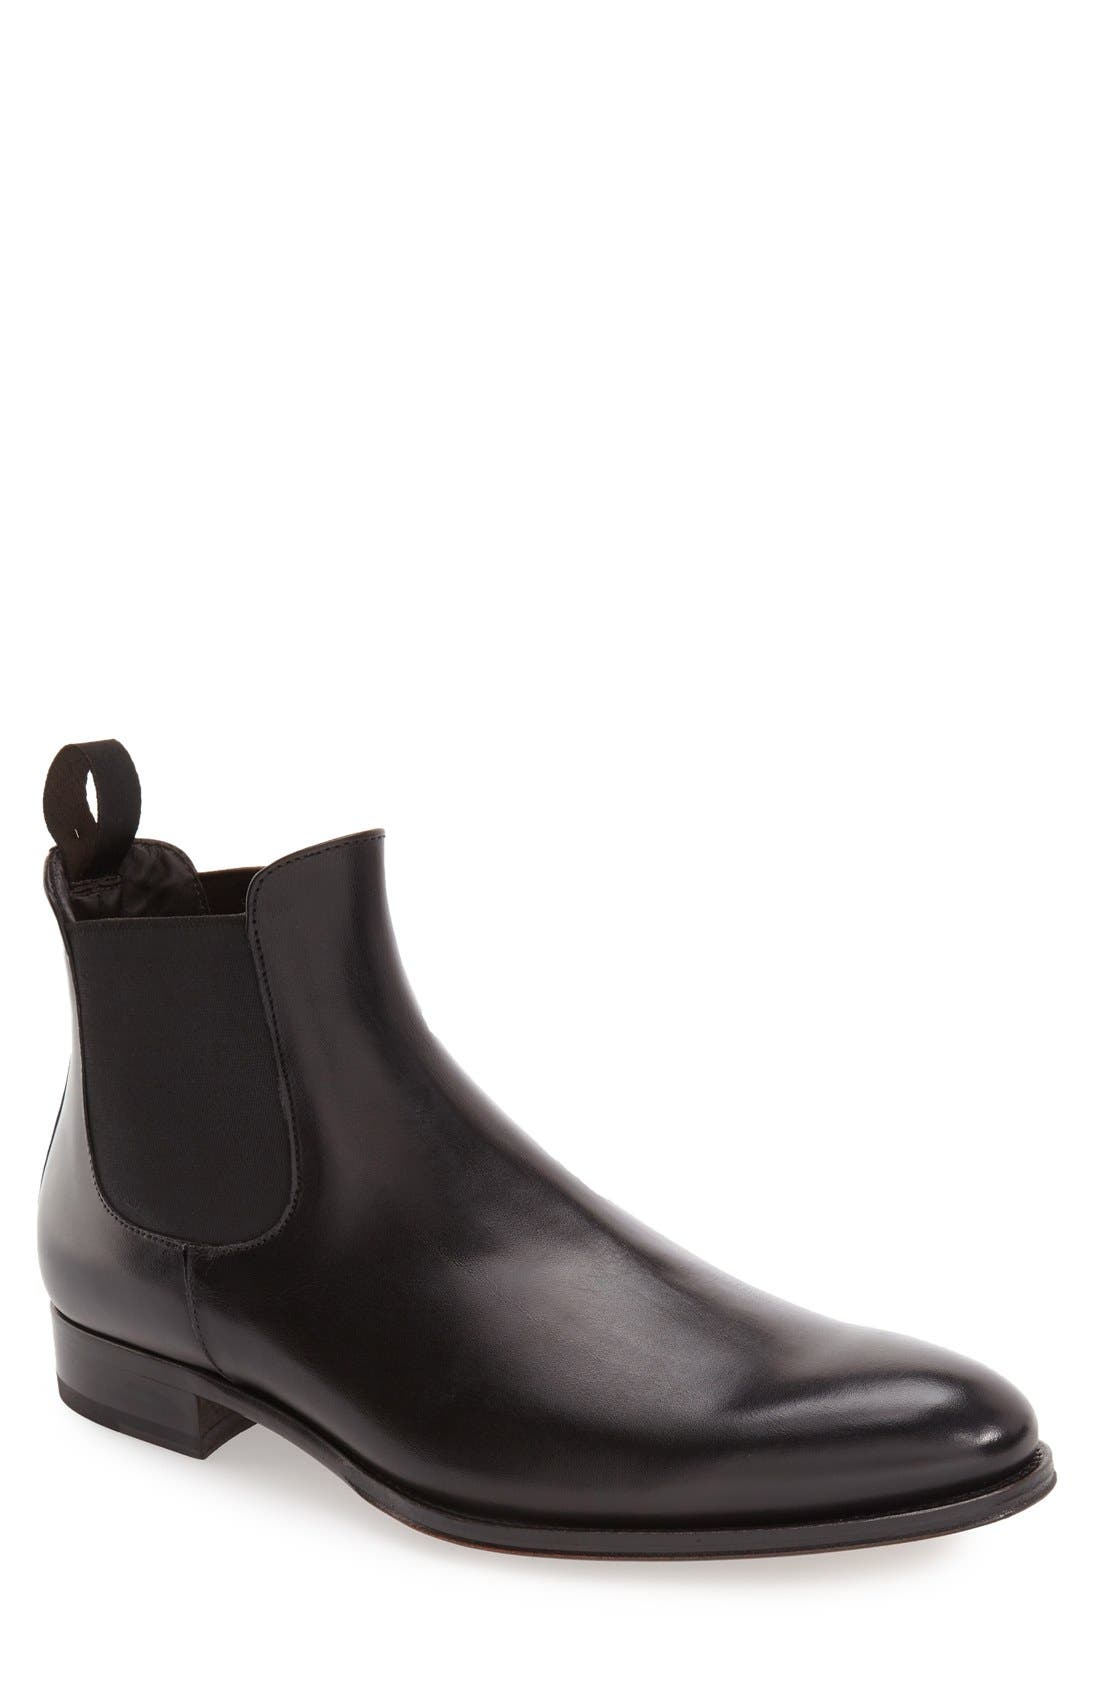 Toby Chelsea Boot,                             Main thumbnail 1, color,                             BLACK LEATHER